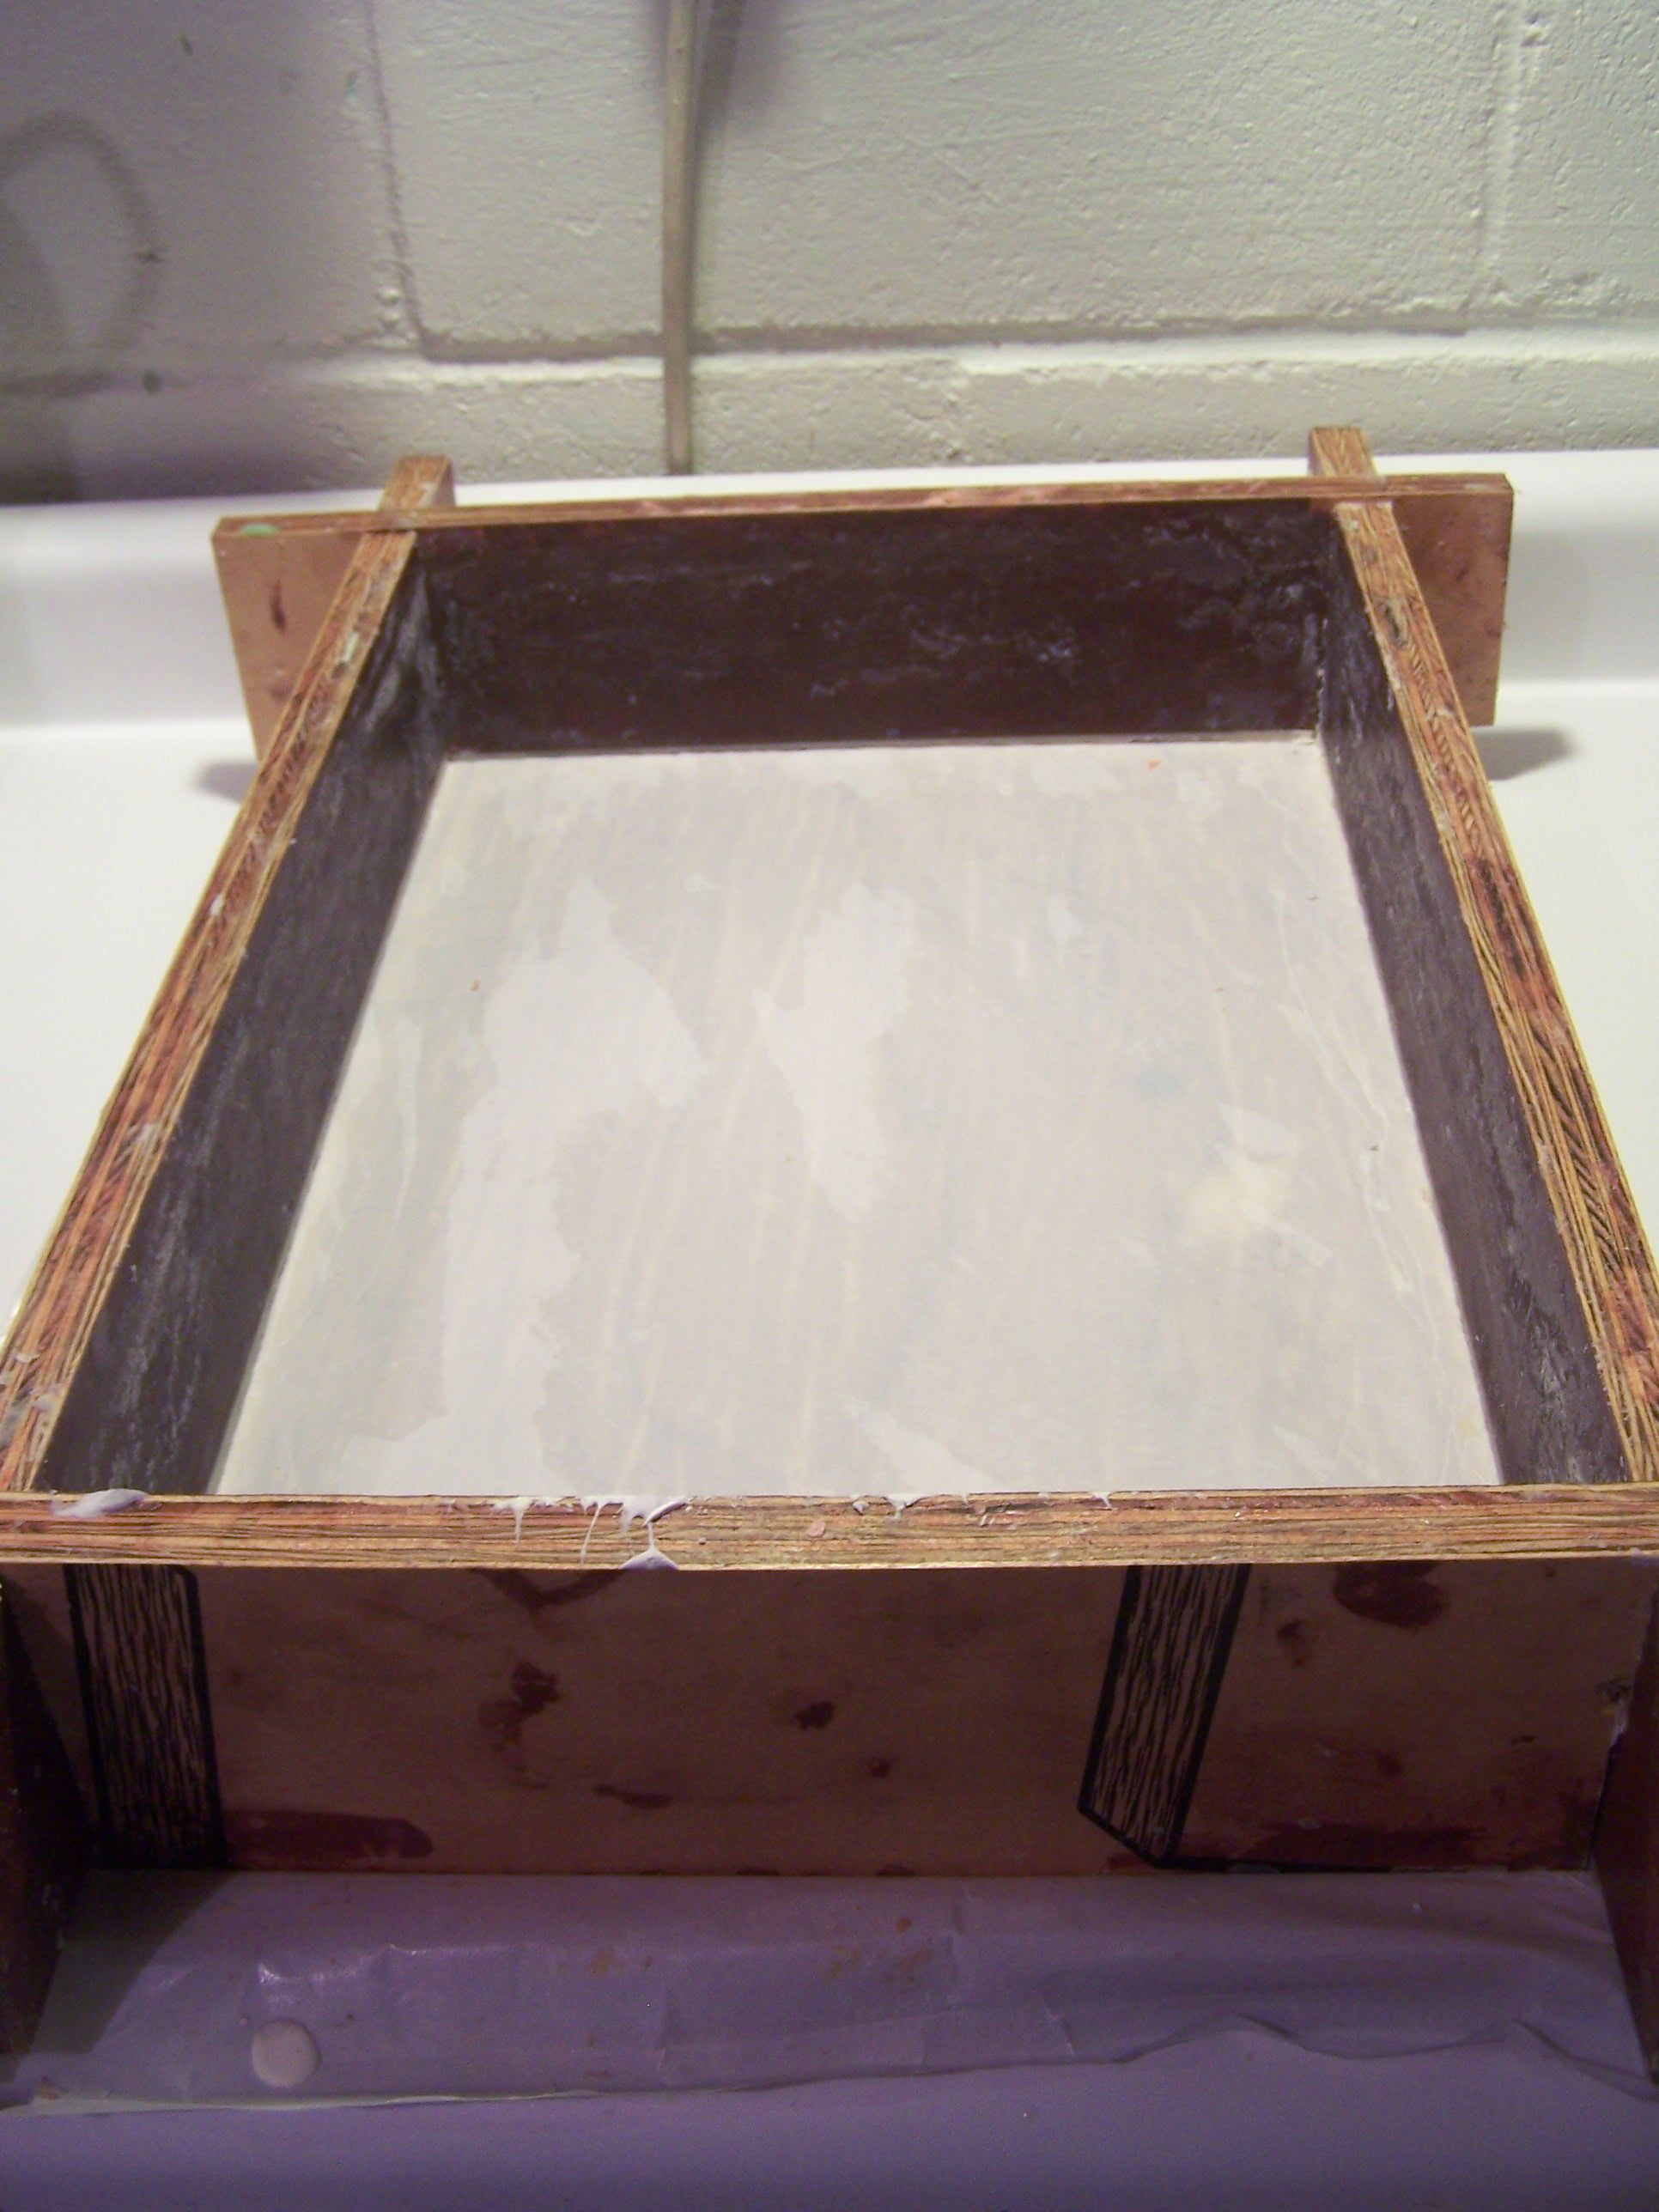 Our Homemade Soap Mold It Holds About 20 Lbs We Line It With